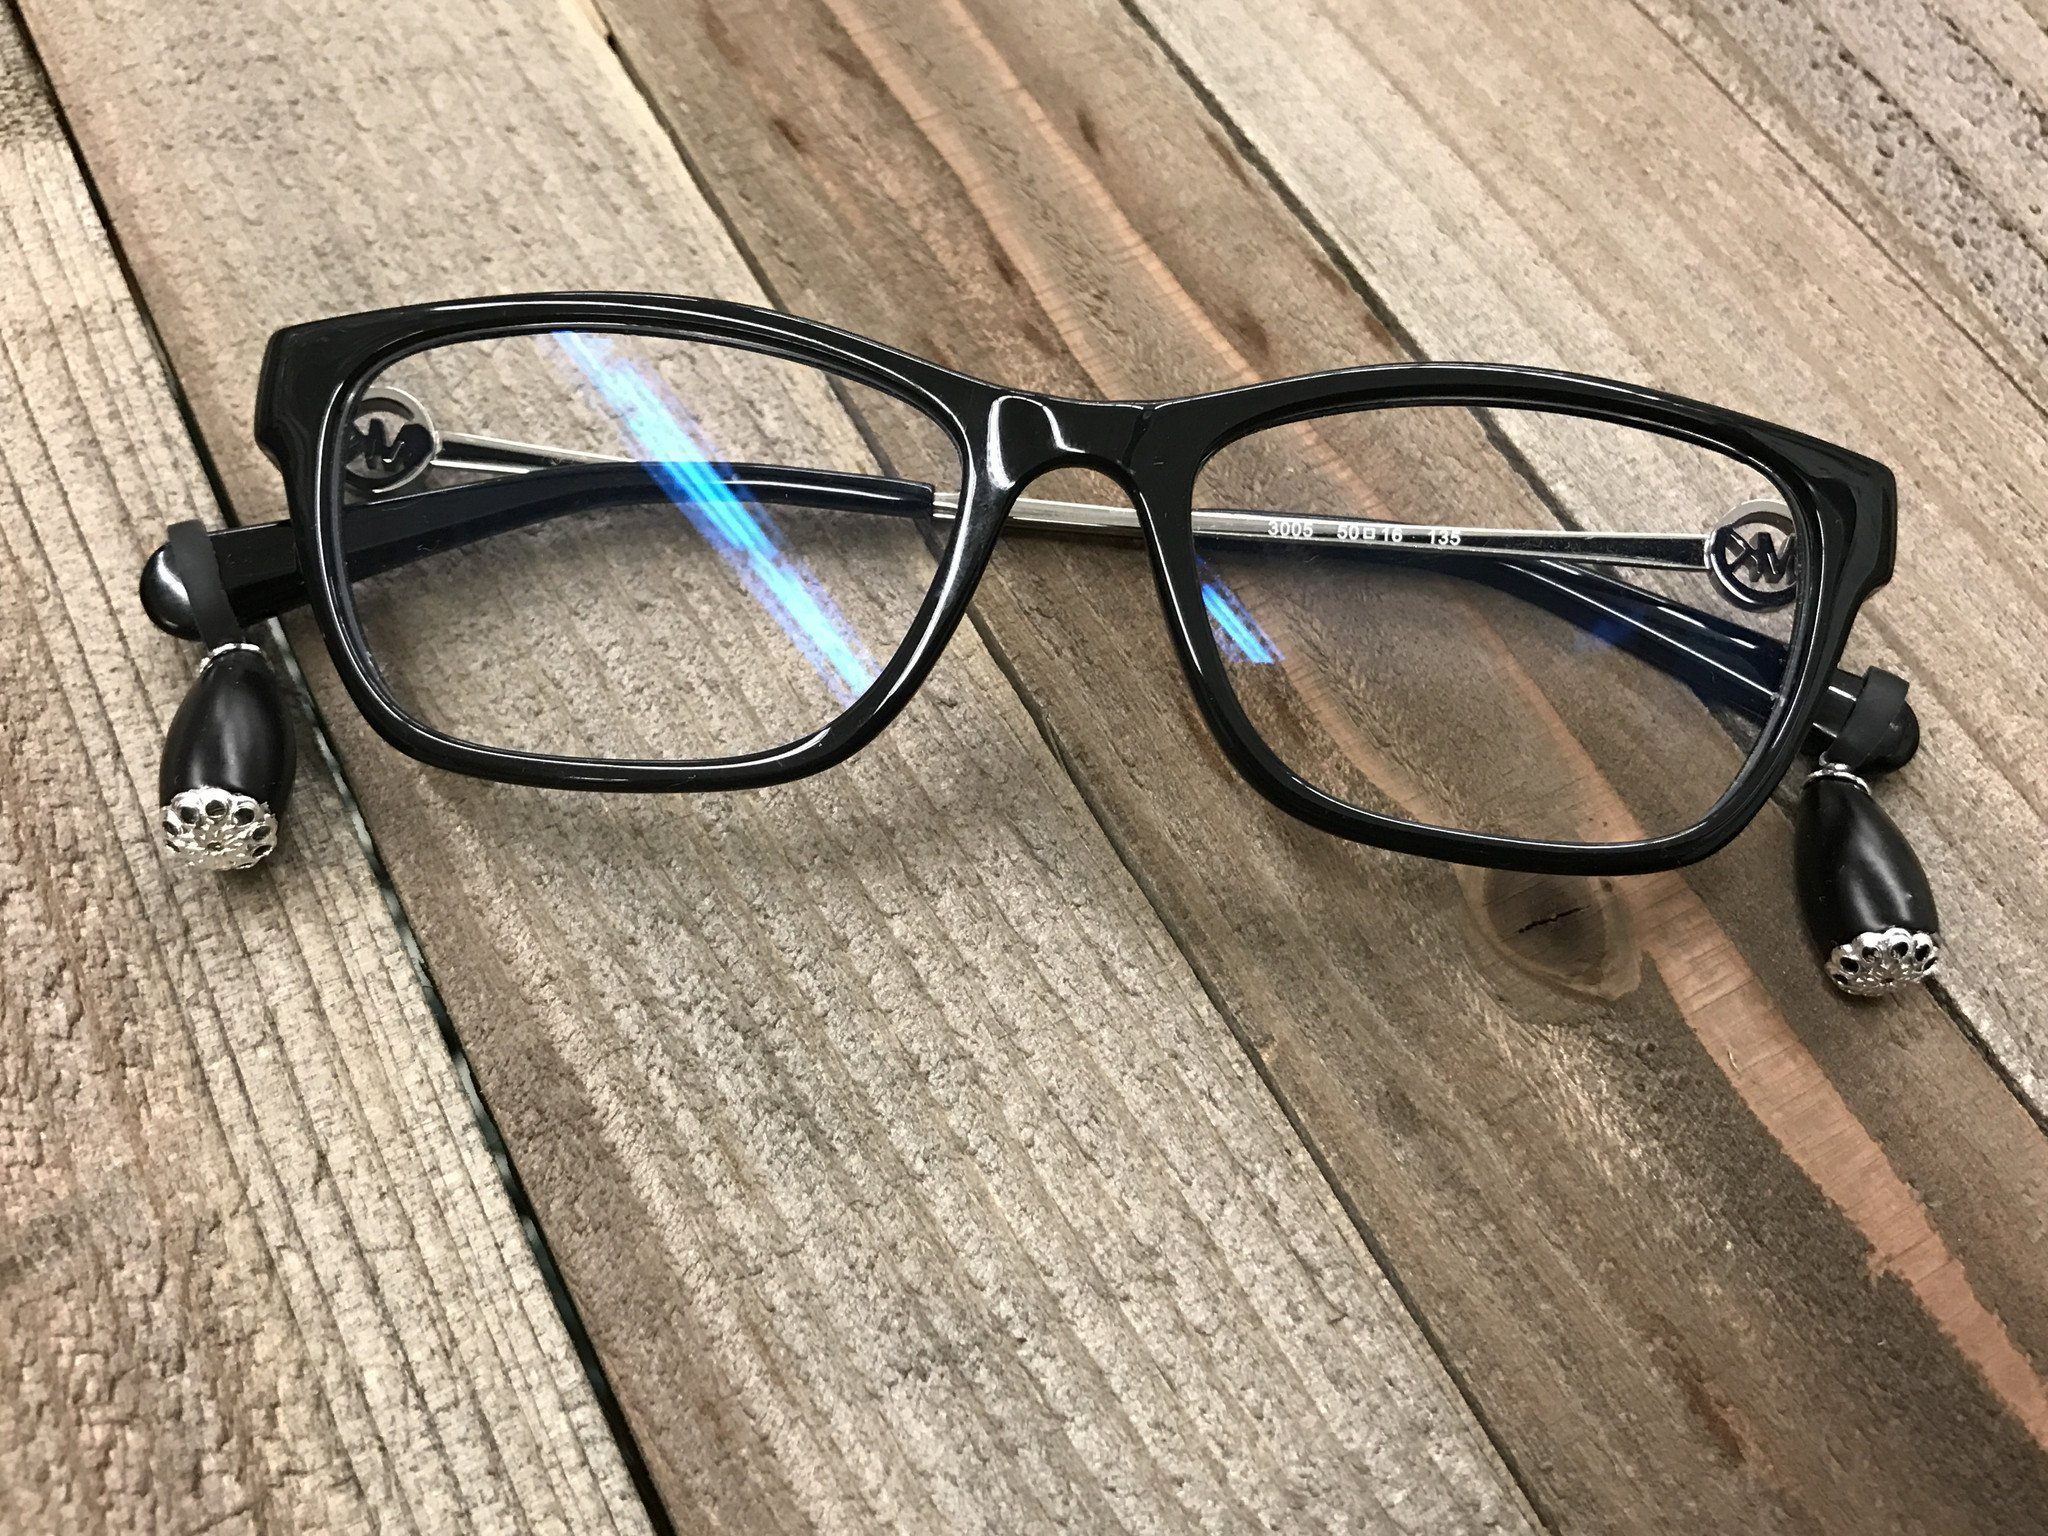 Eyeglasses Accessories, Retainers, Jewelry Prevents Glasses Slipping ...